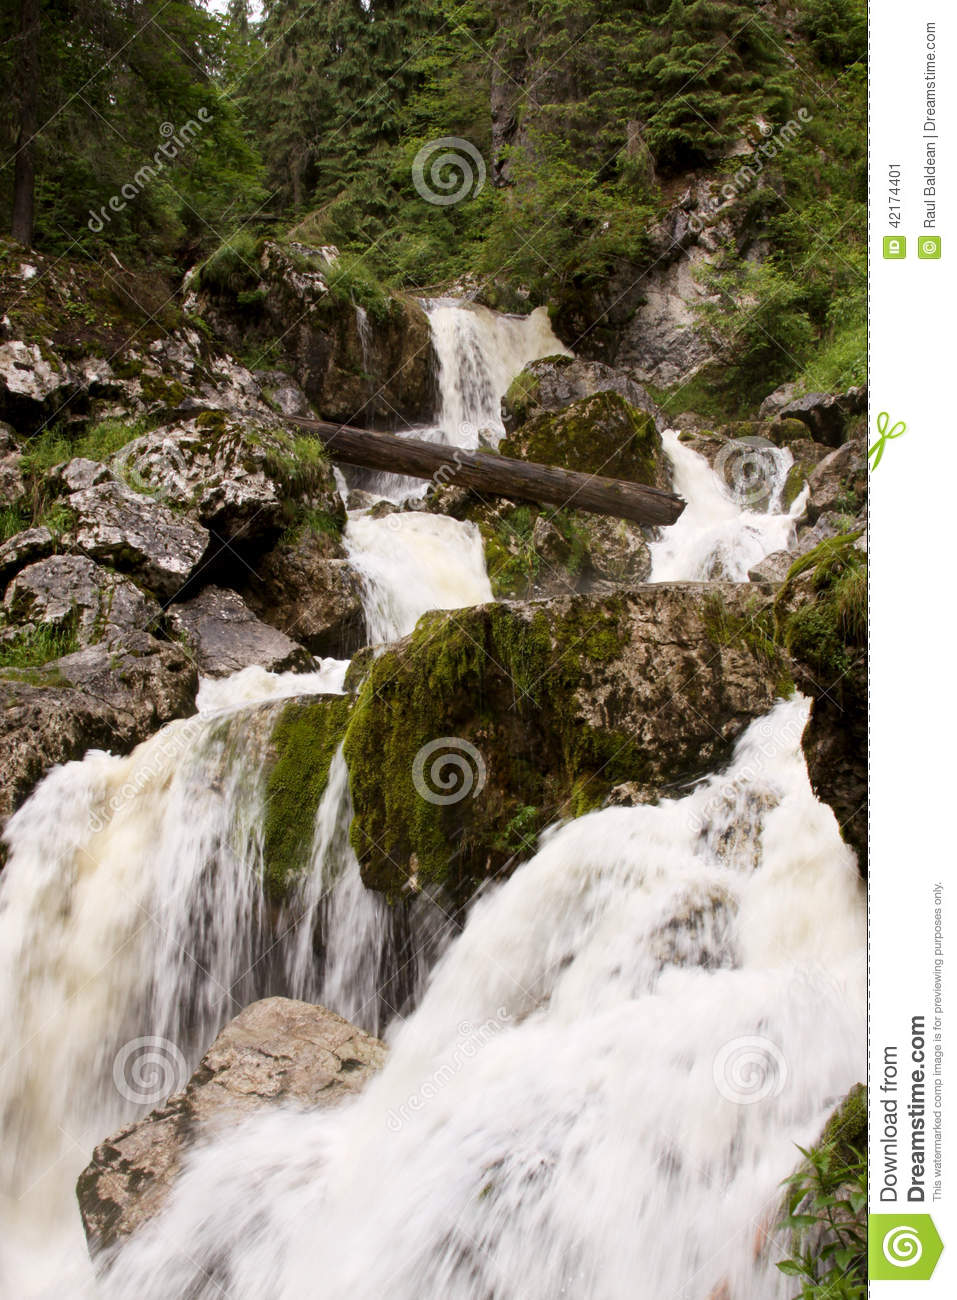 Small waterfall in river bed 06